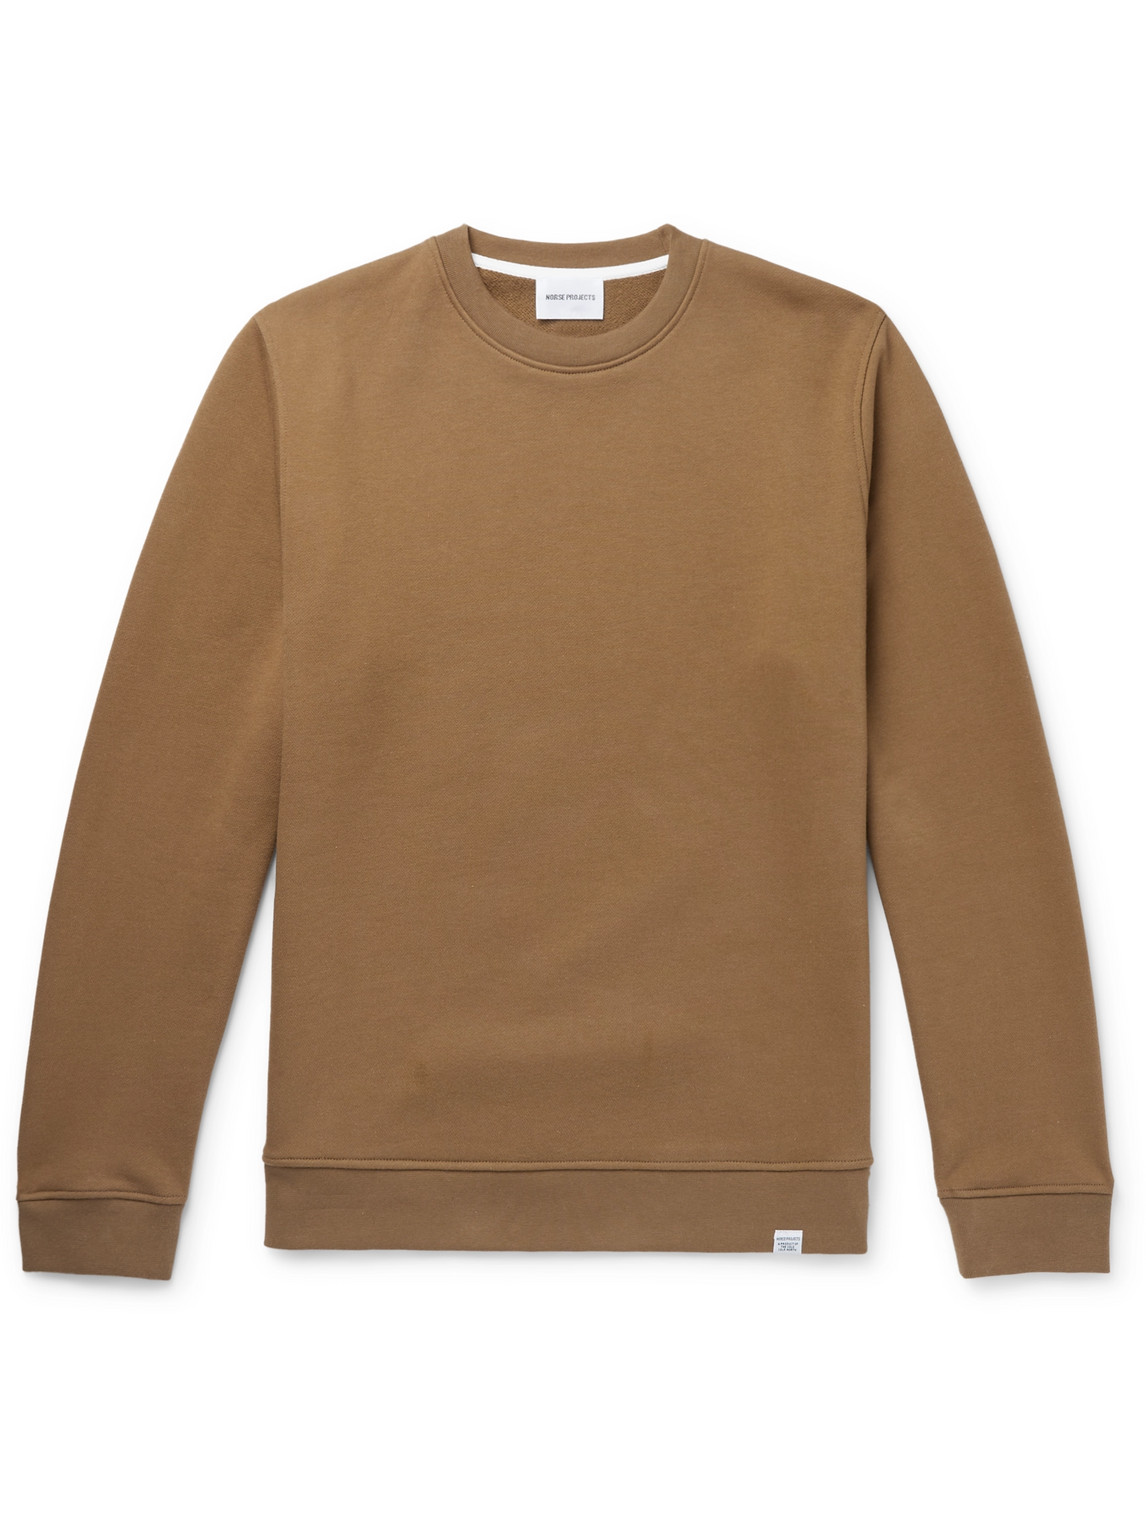 norse projects - vagn loopback cotton-jersey sweatshirt - men - brown - s